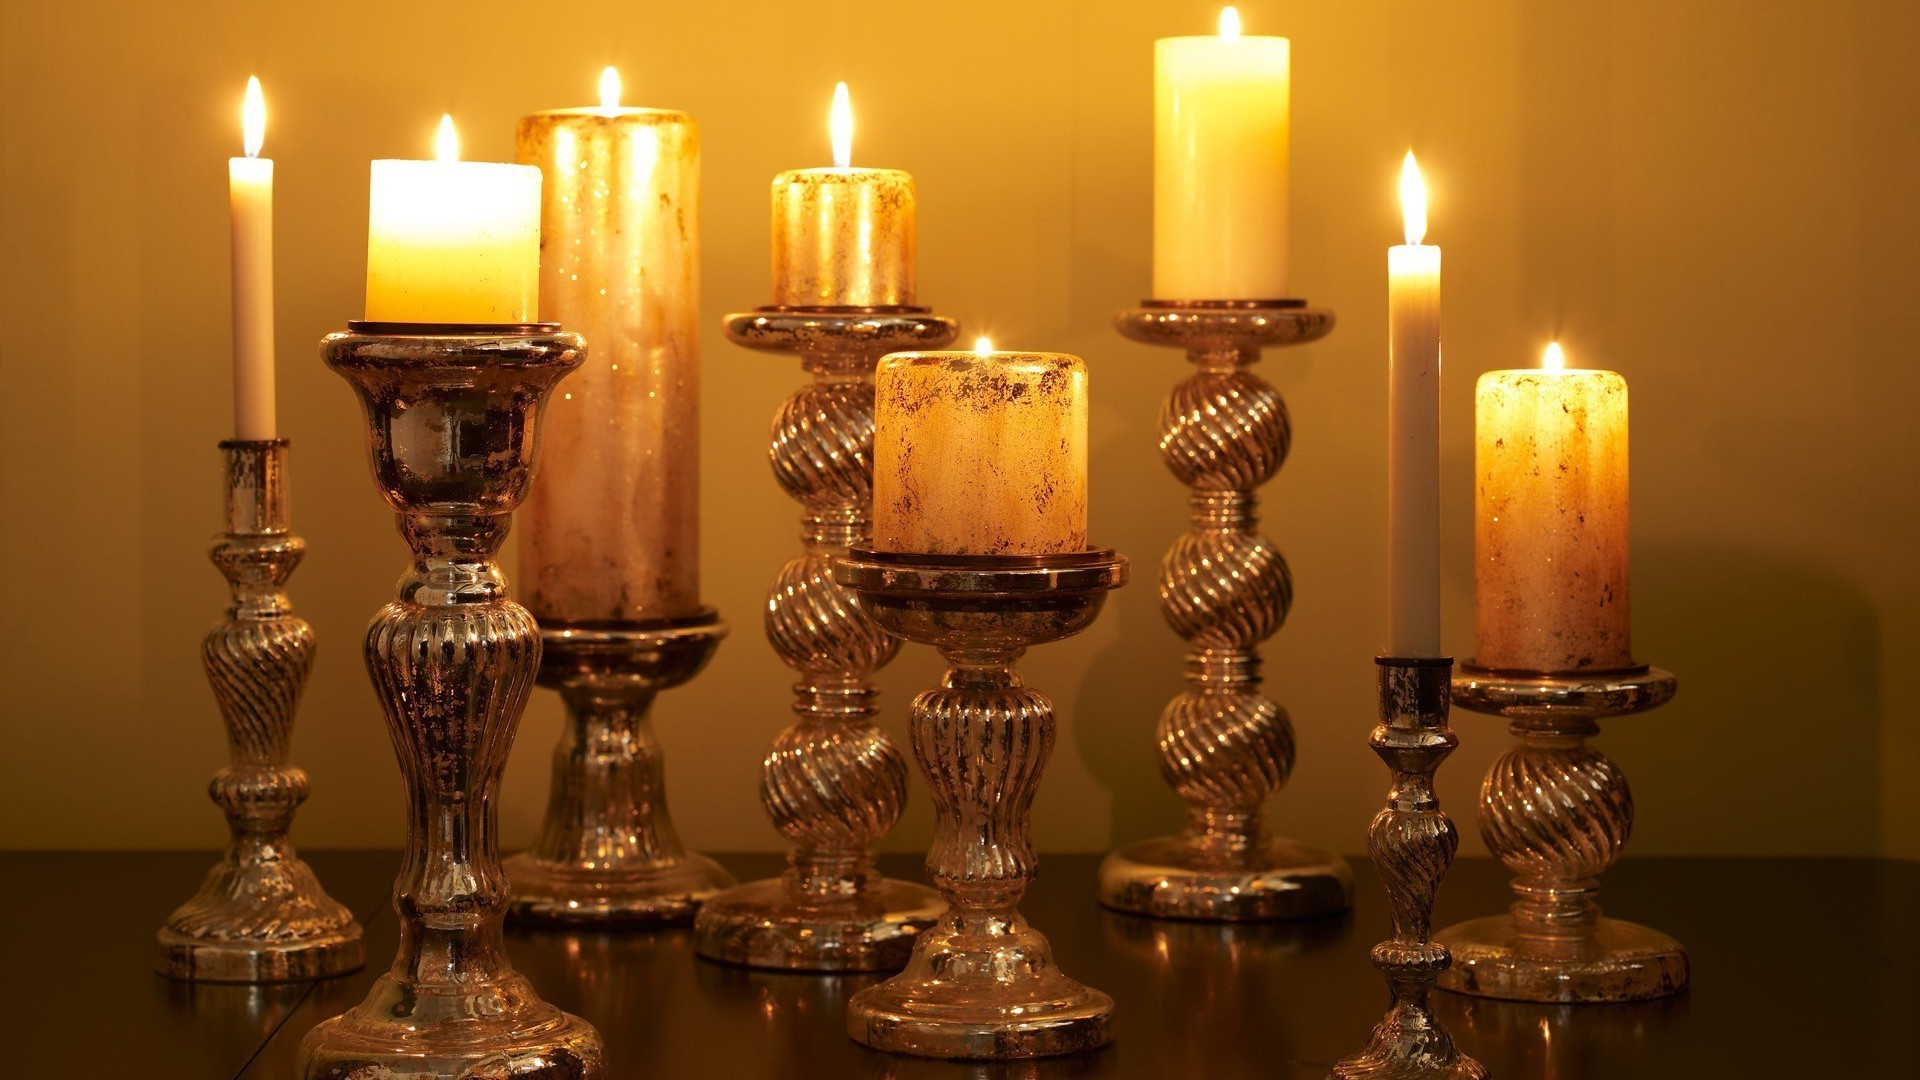 interior candle candlestick candlelight lamp wax menorah burnt flame chandelier brass religion illuminated interior design antique light glass bronze wick decoration